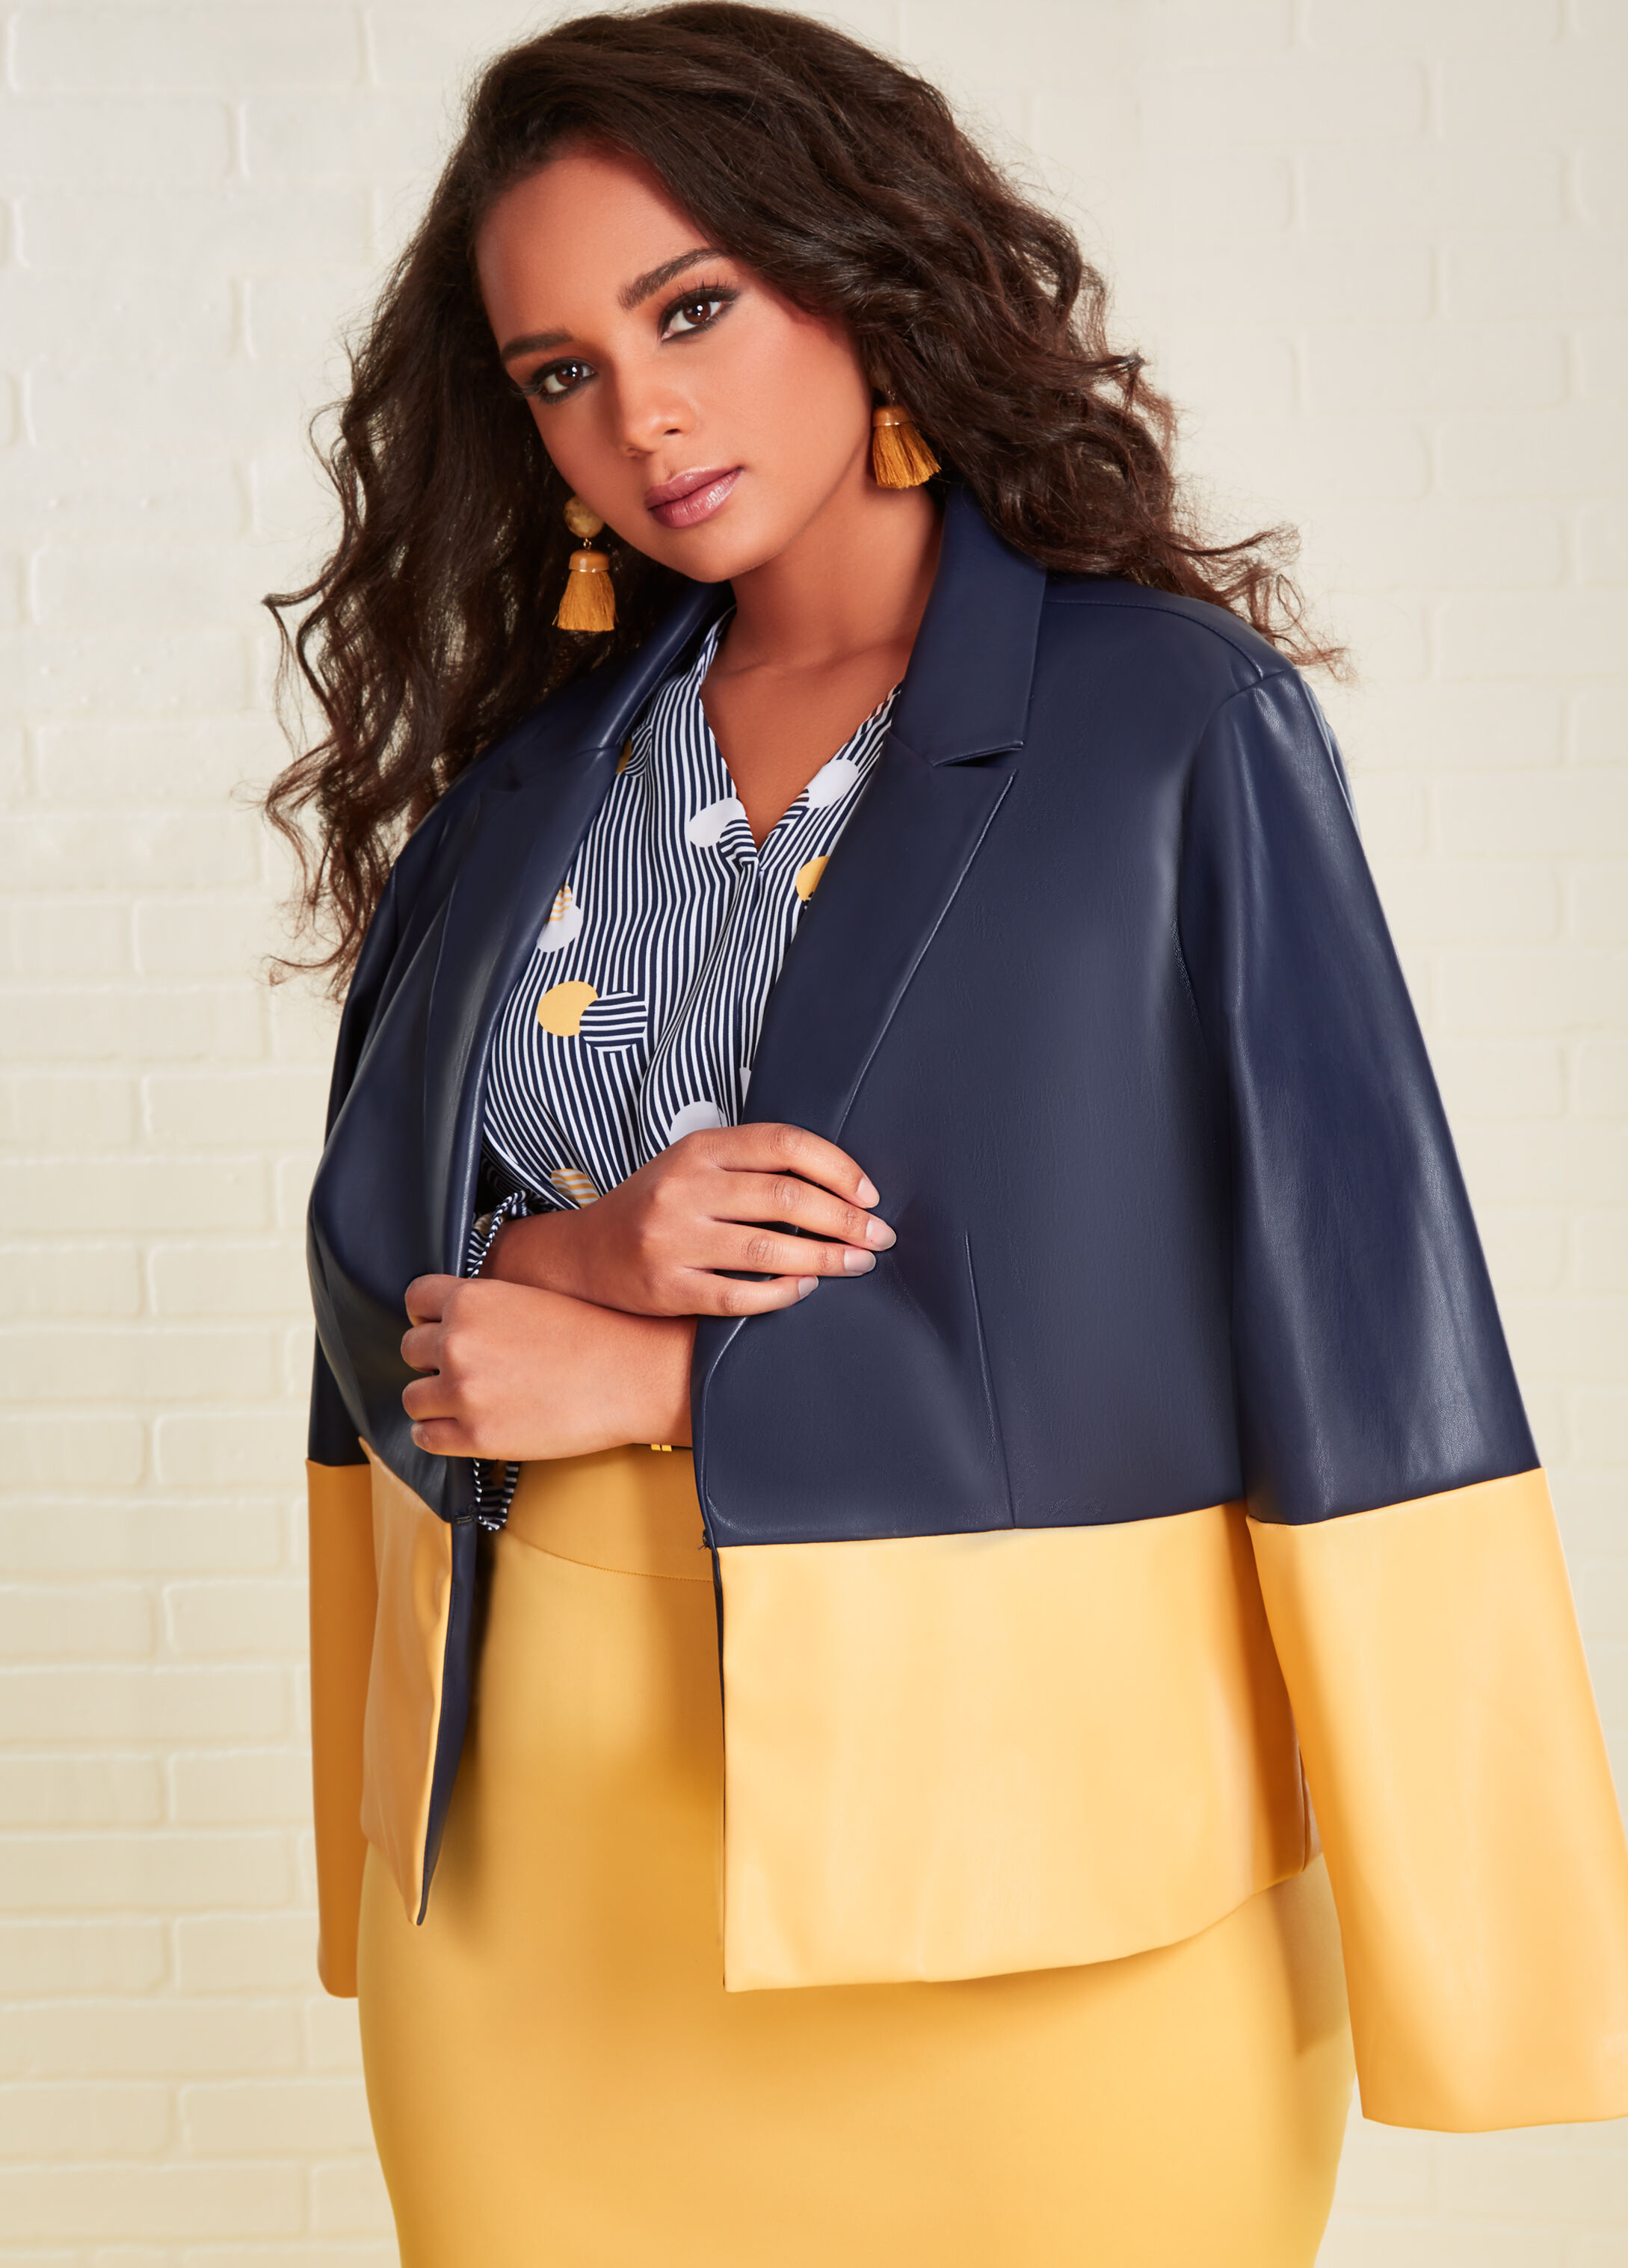 Plus Size Outfits - Colorblock Blazer with Blouse and Pencil Skirt